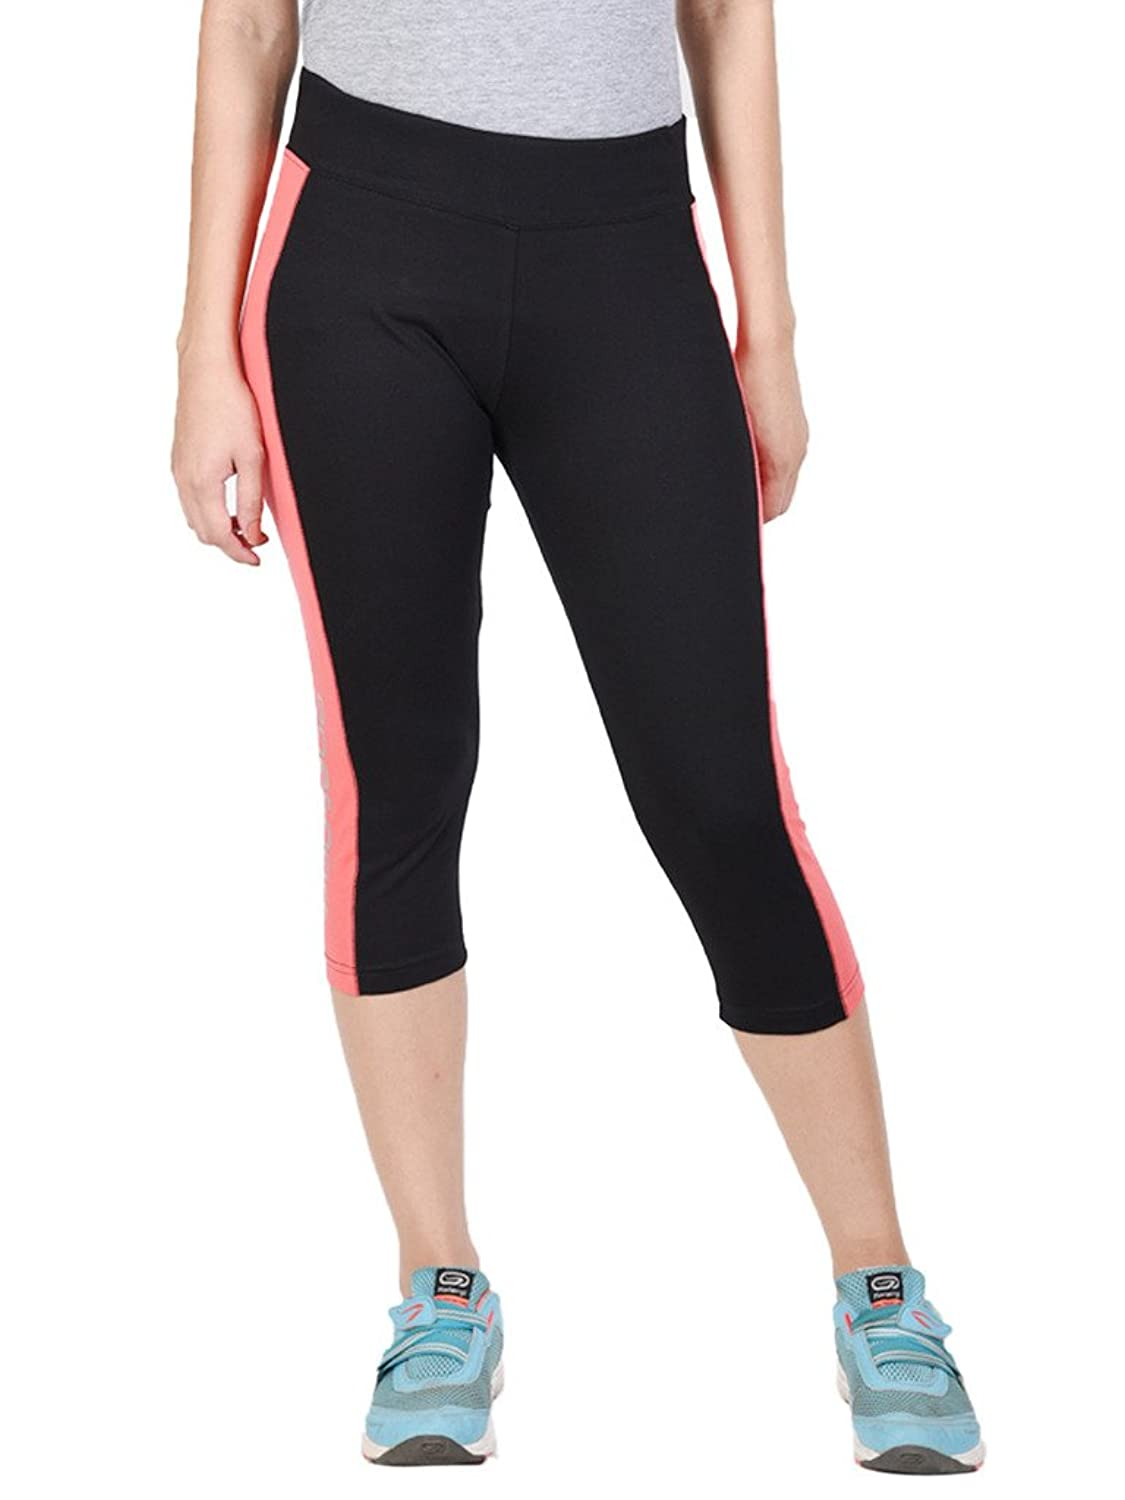 WOMEN'S COTTON SPANDEX JERSEY BLACK + CORAL THREE FORTHS